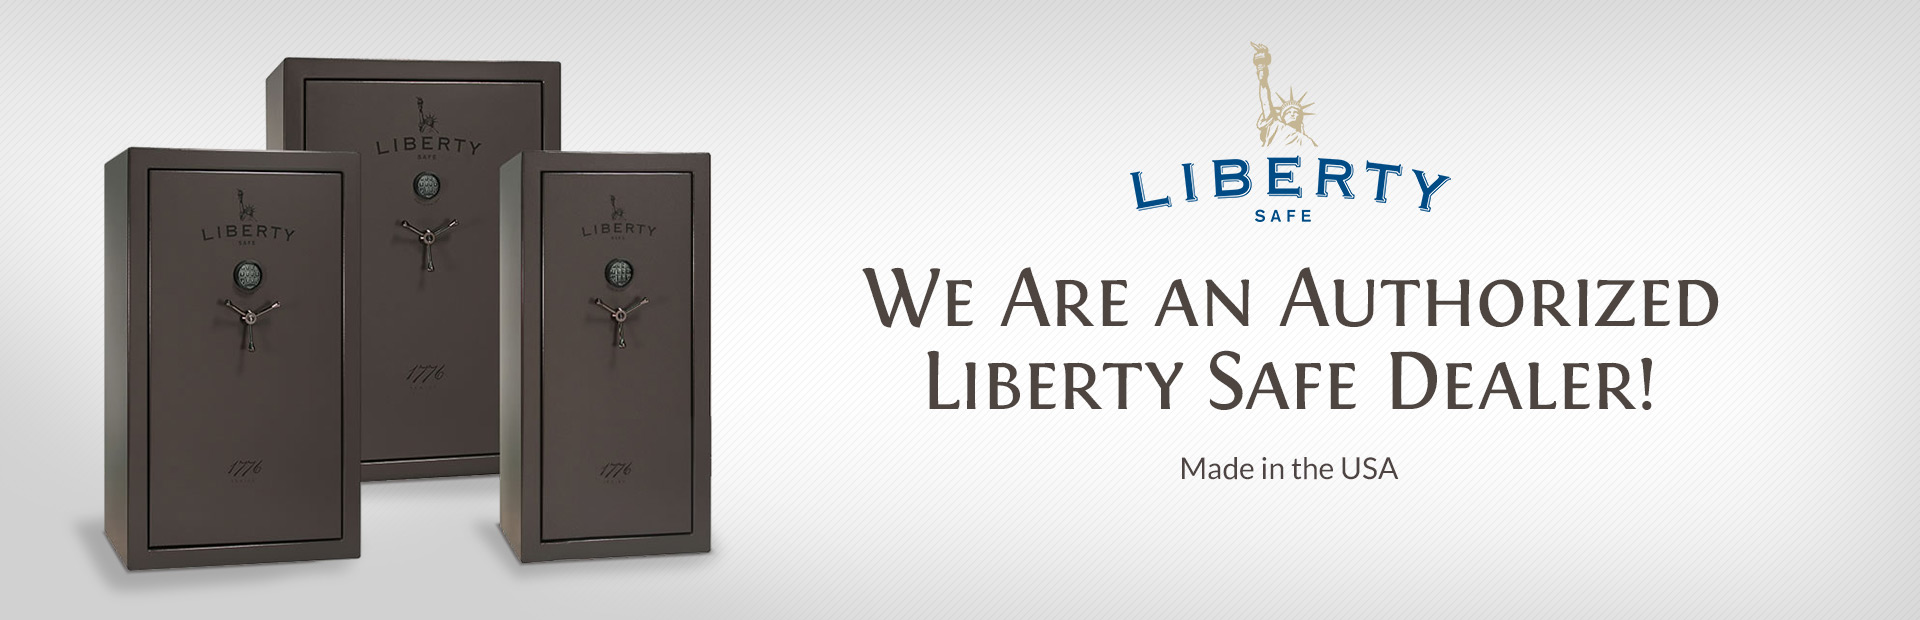 We are an authorized Liberty Safe dealer!